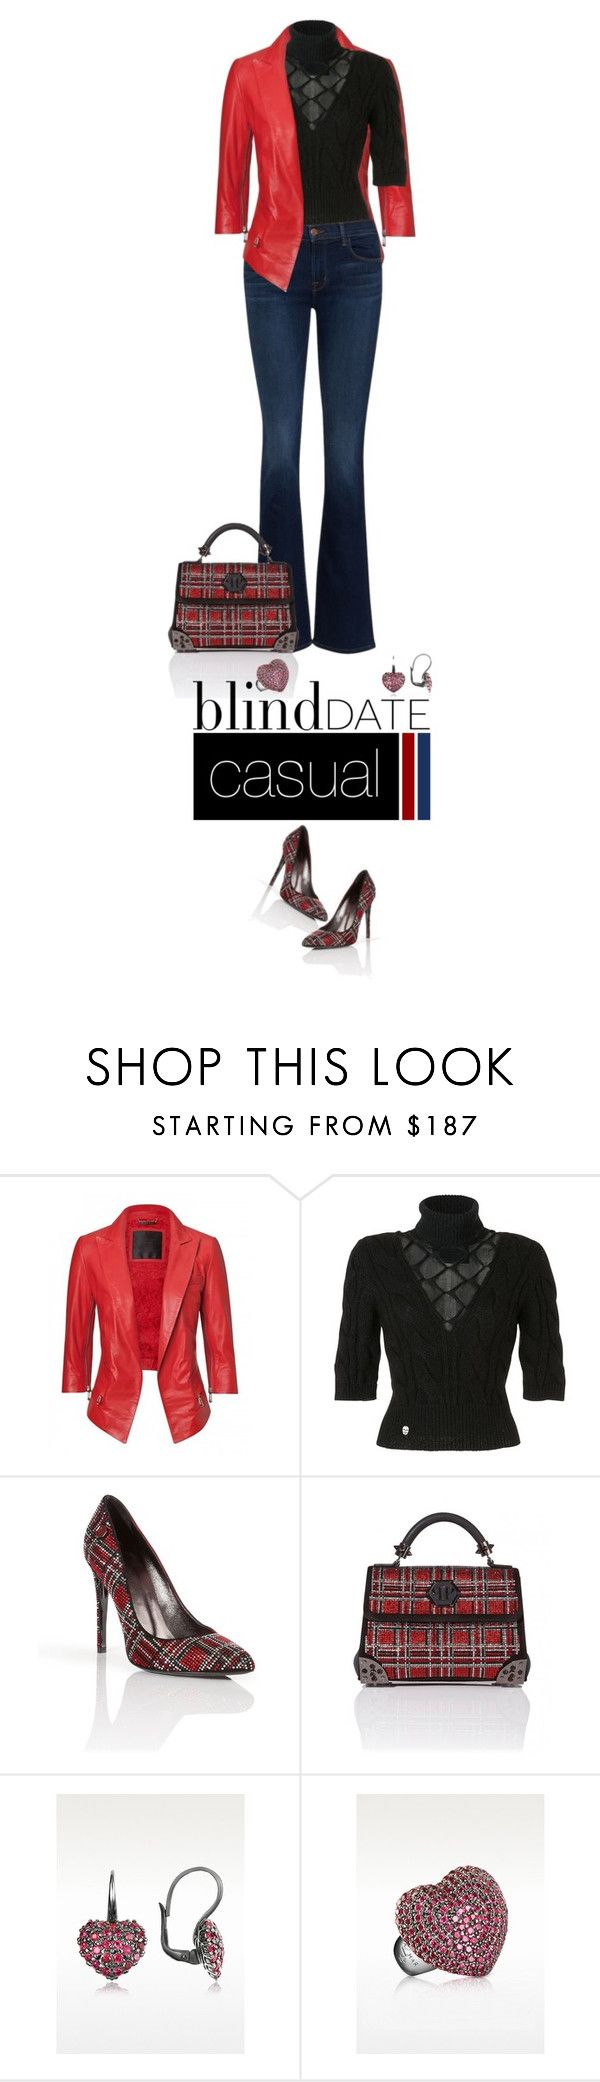 """""""Casual outfit: Red - Denim - Black"""" by downtownblues ❤ liked on Polyvore featuring Mode, women's clothing, women, female, woman, misses und juniors"""